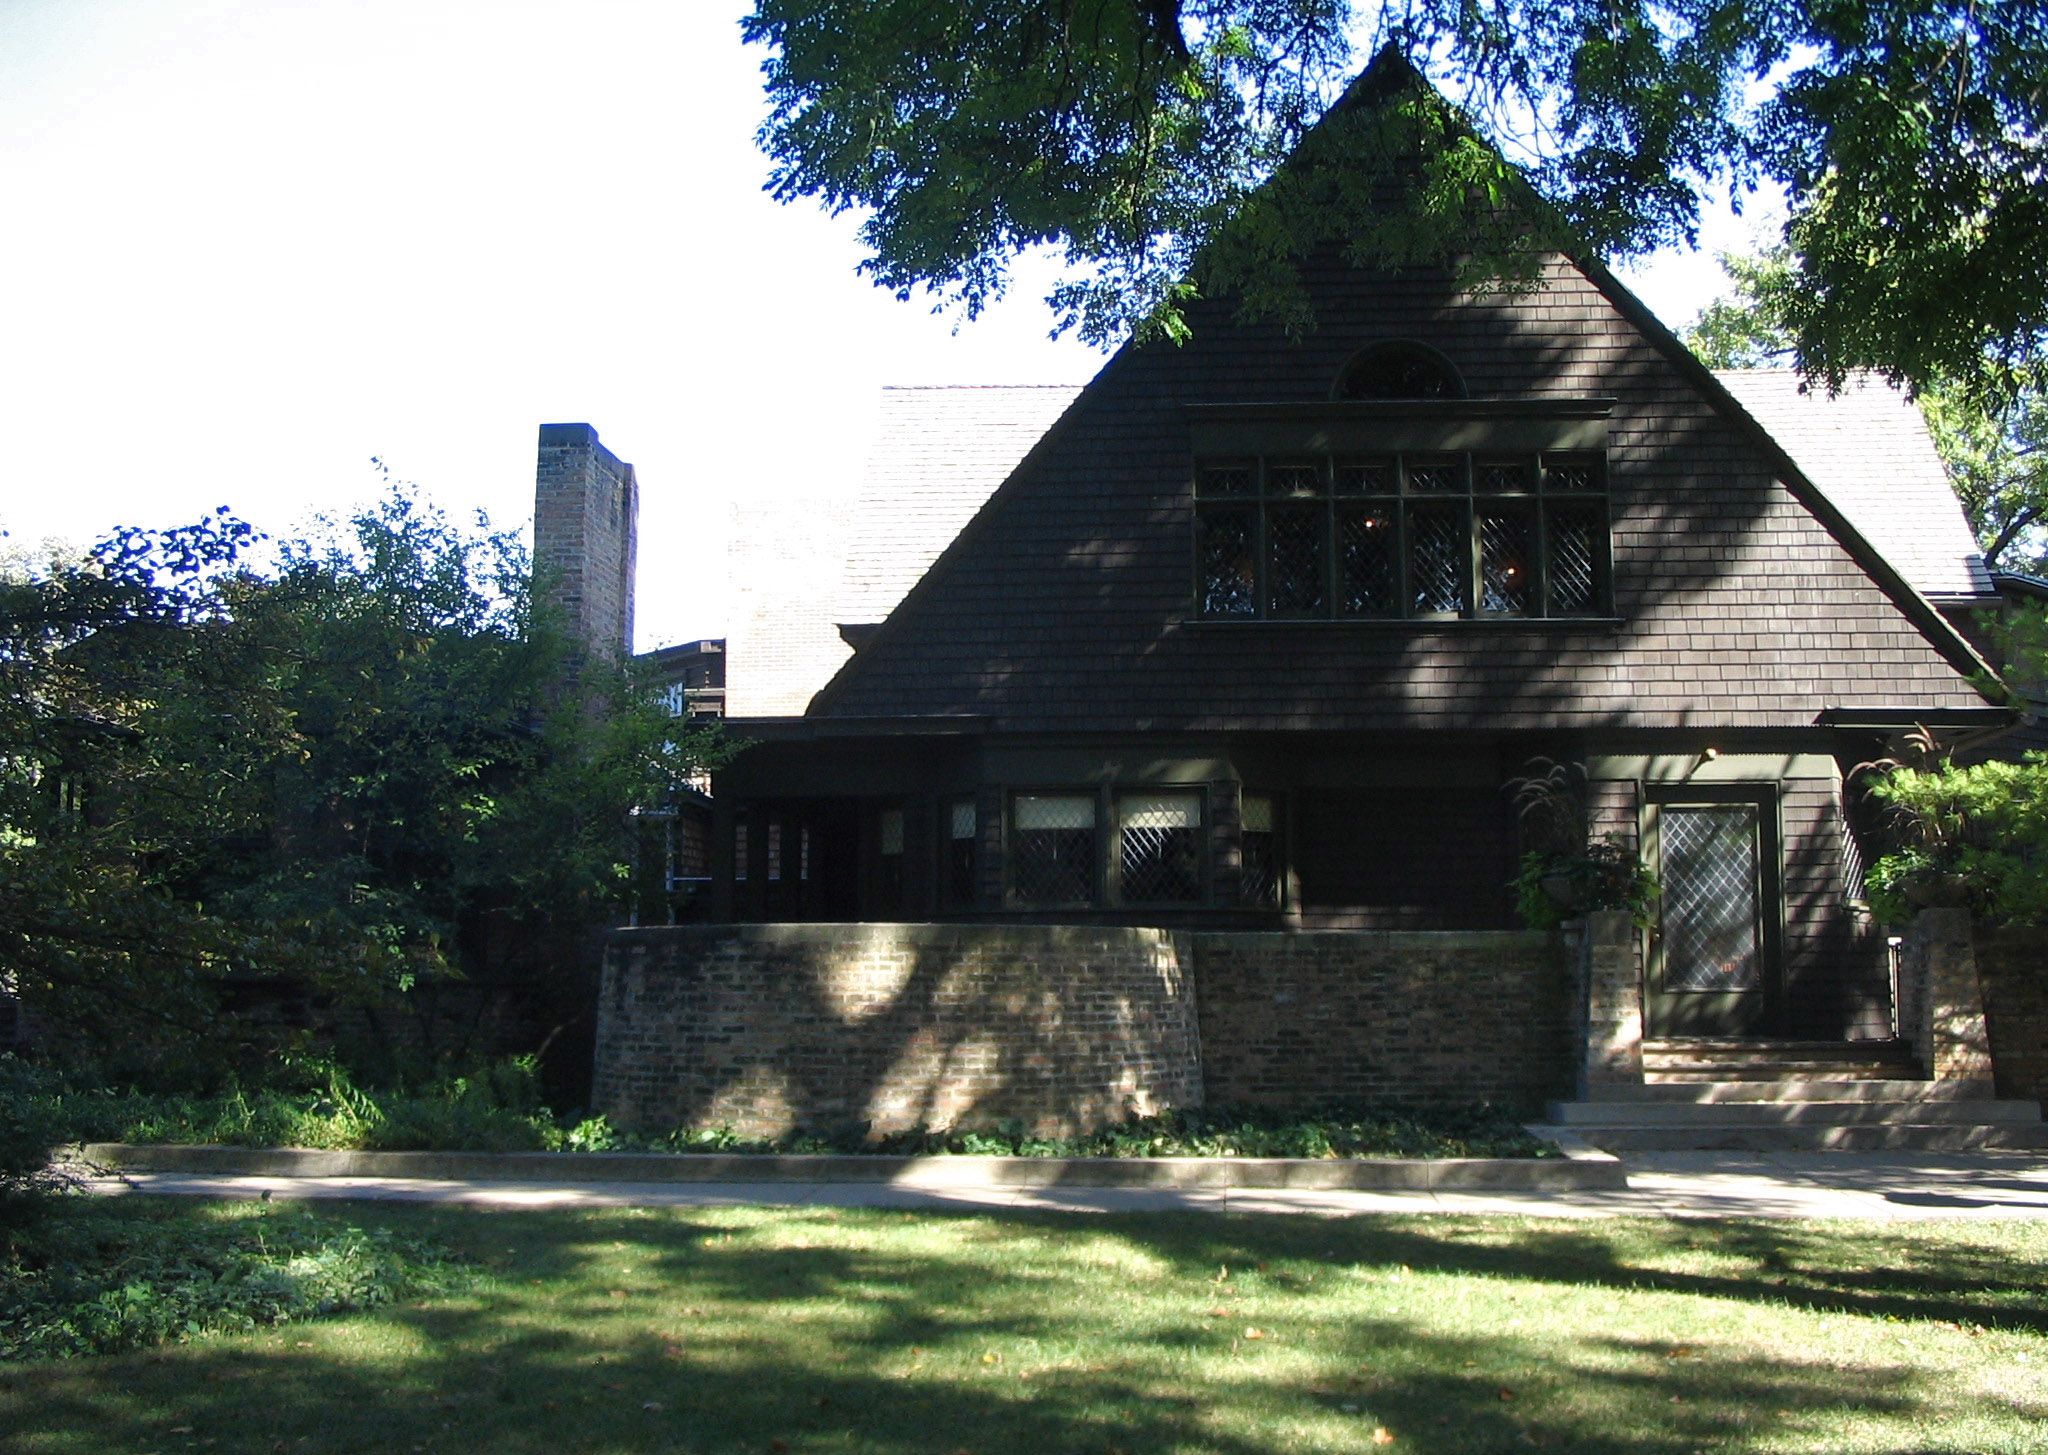 frank lloyd wright house studio chicago architecture revived frank lloyd wright completed this house studio for his new family in 1889 before he developed his prairie style architecture nestled in the comfortable